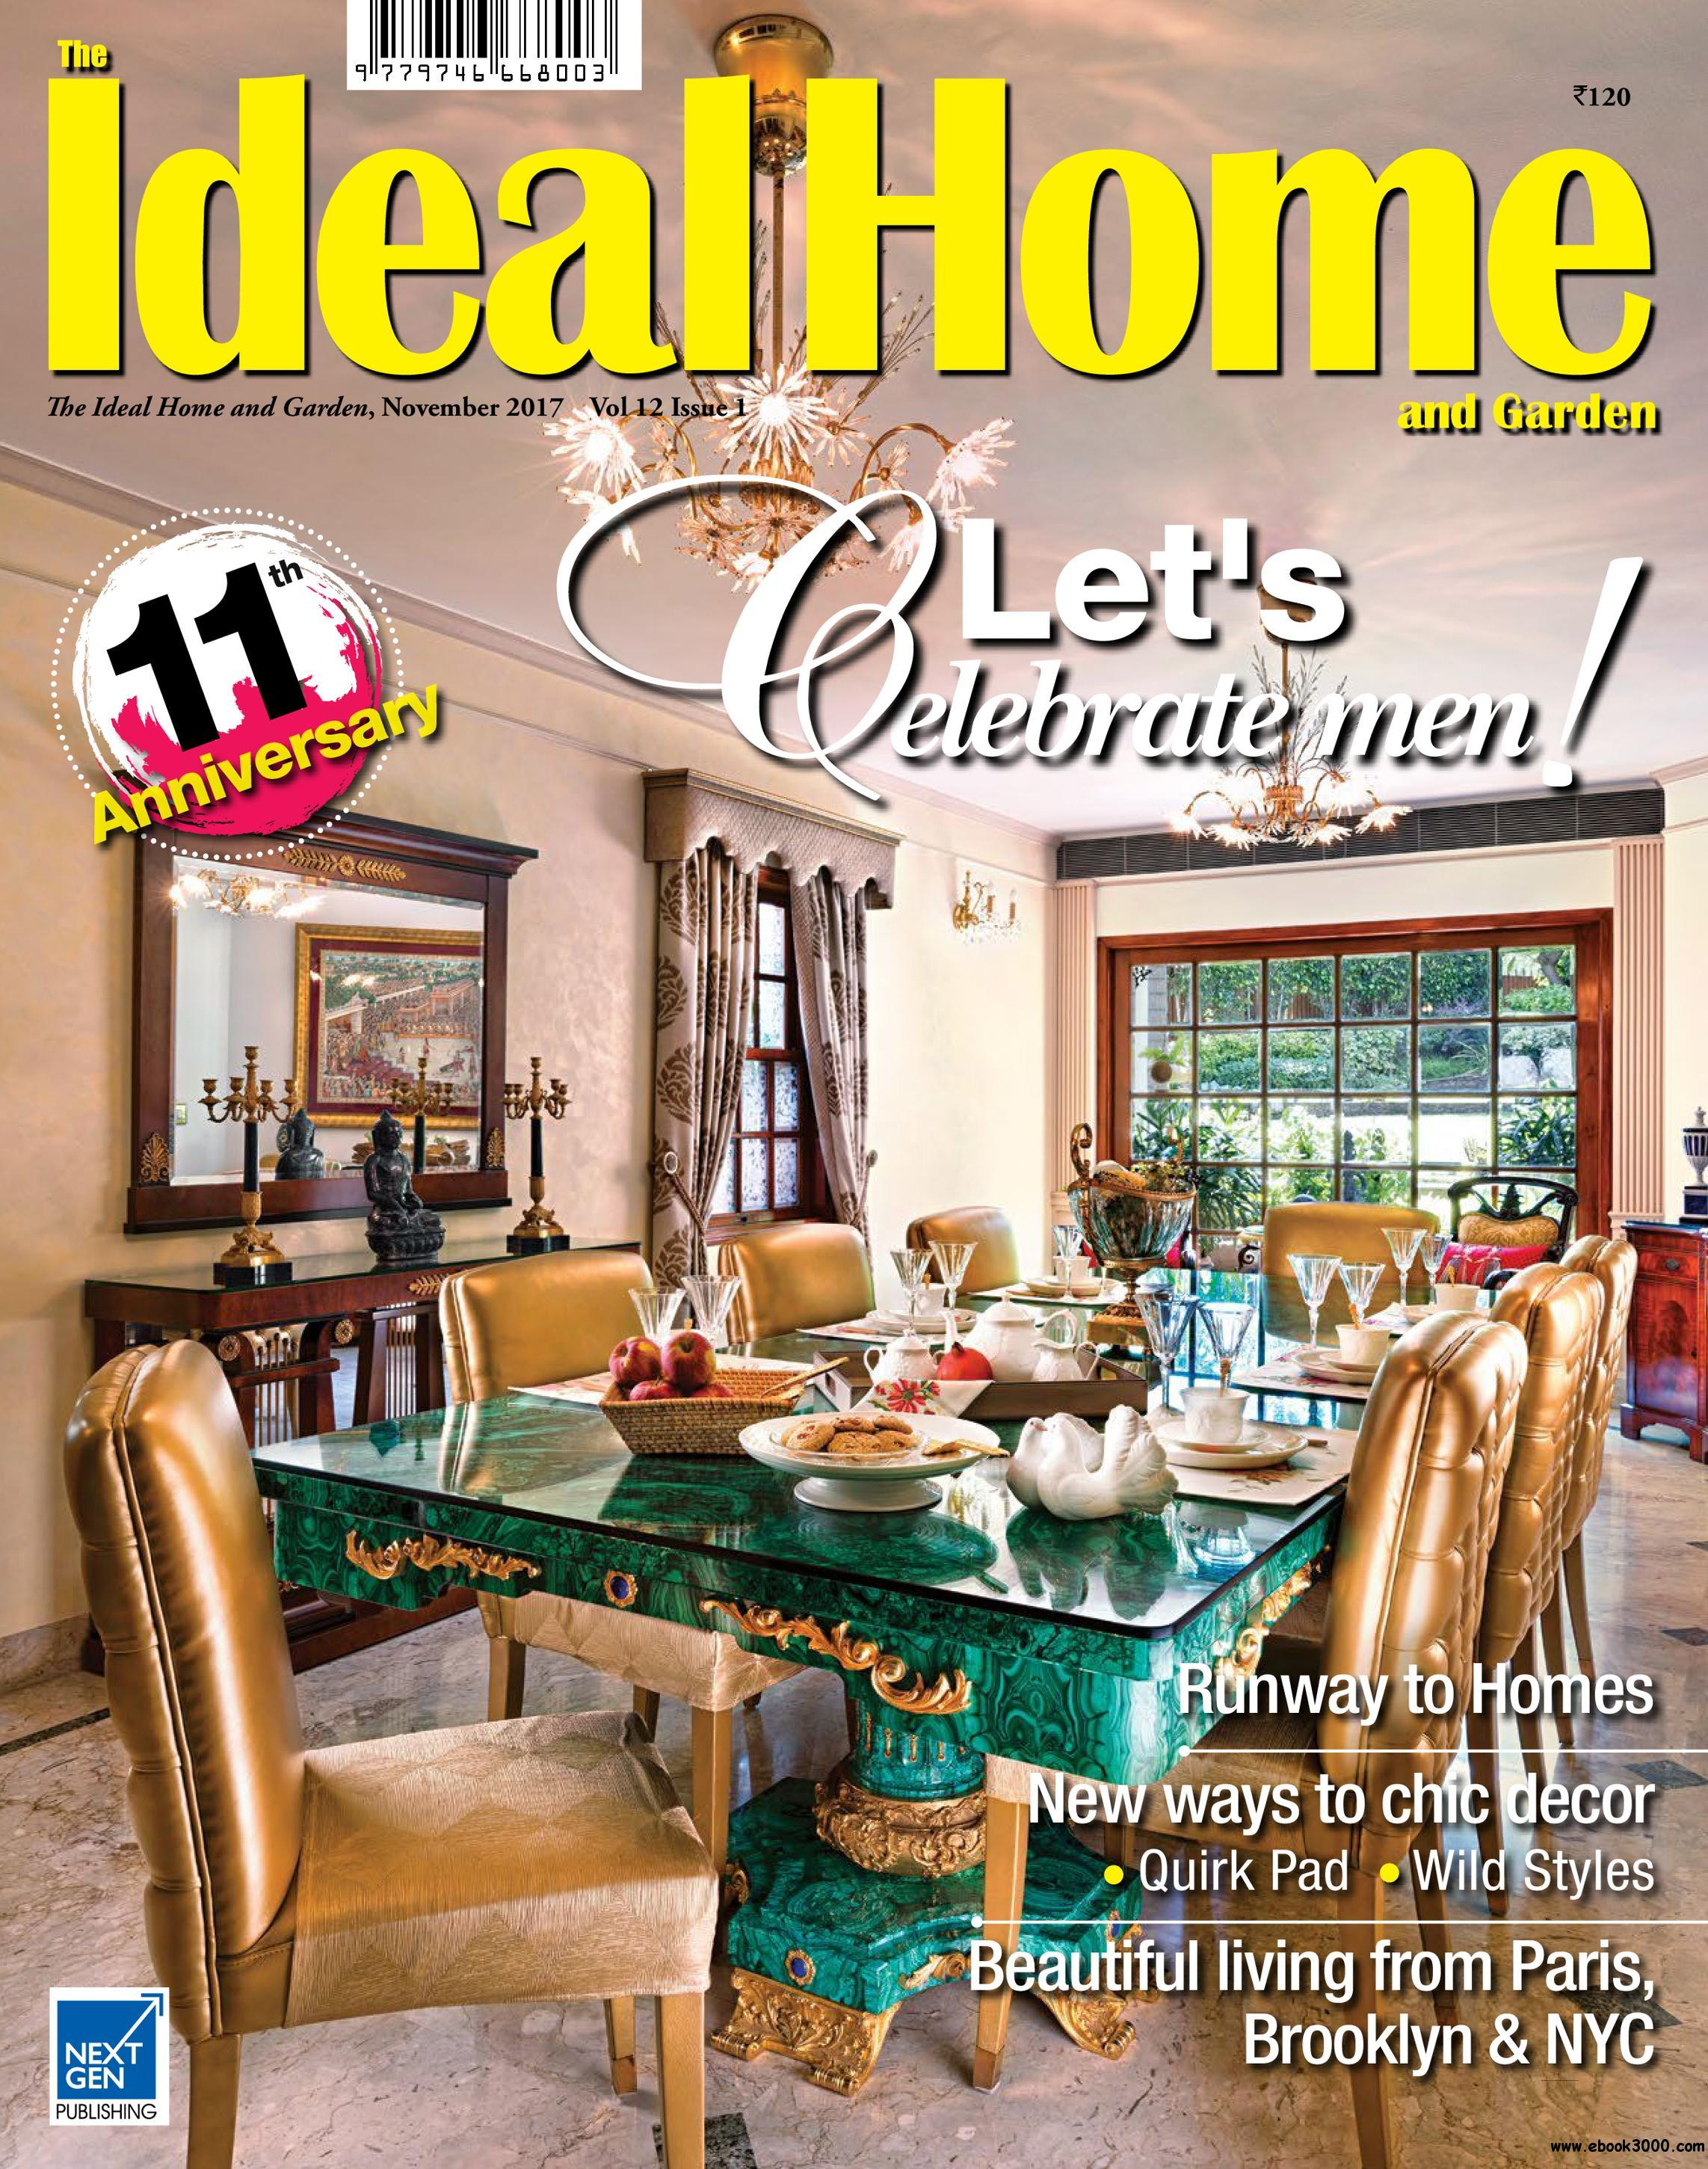 The Ideal Home and Garden India - November 2017 - Free ... on keystone home design, nelson home design, byron home design, howes home design, jefferson home design, english home design, kingston home design, high-tech home design, group home design, perry home design, white home design, idea home design, crawford home design, hamilton home design, morgan home design, good home design, gray home design, exterior home house design, lexington home design, universal home design,